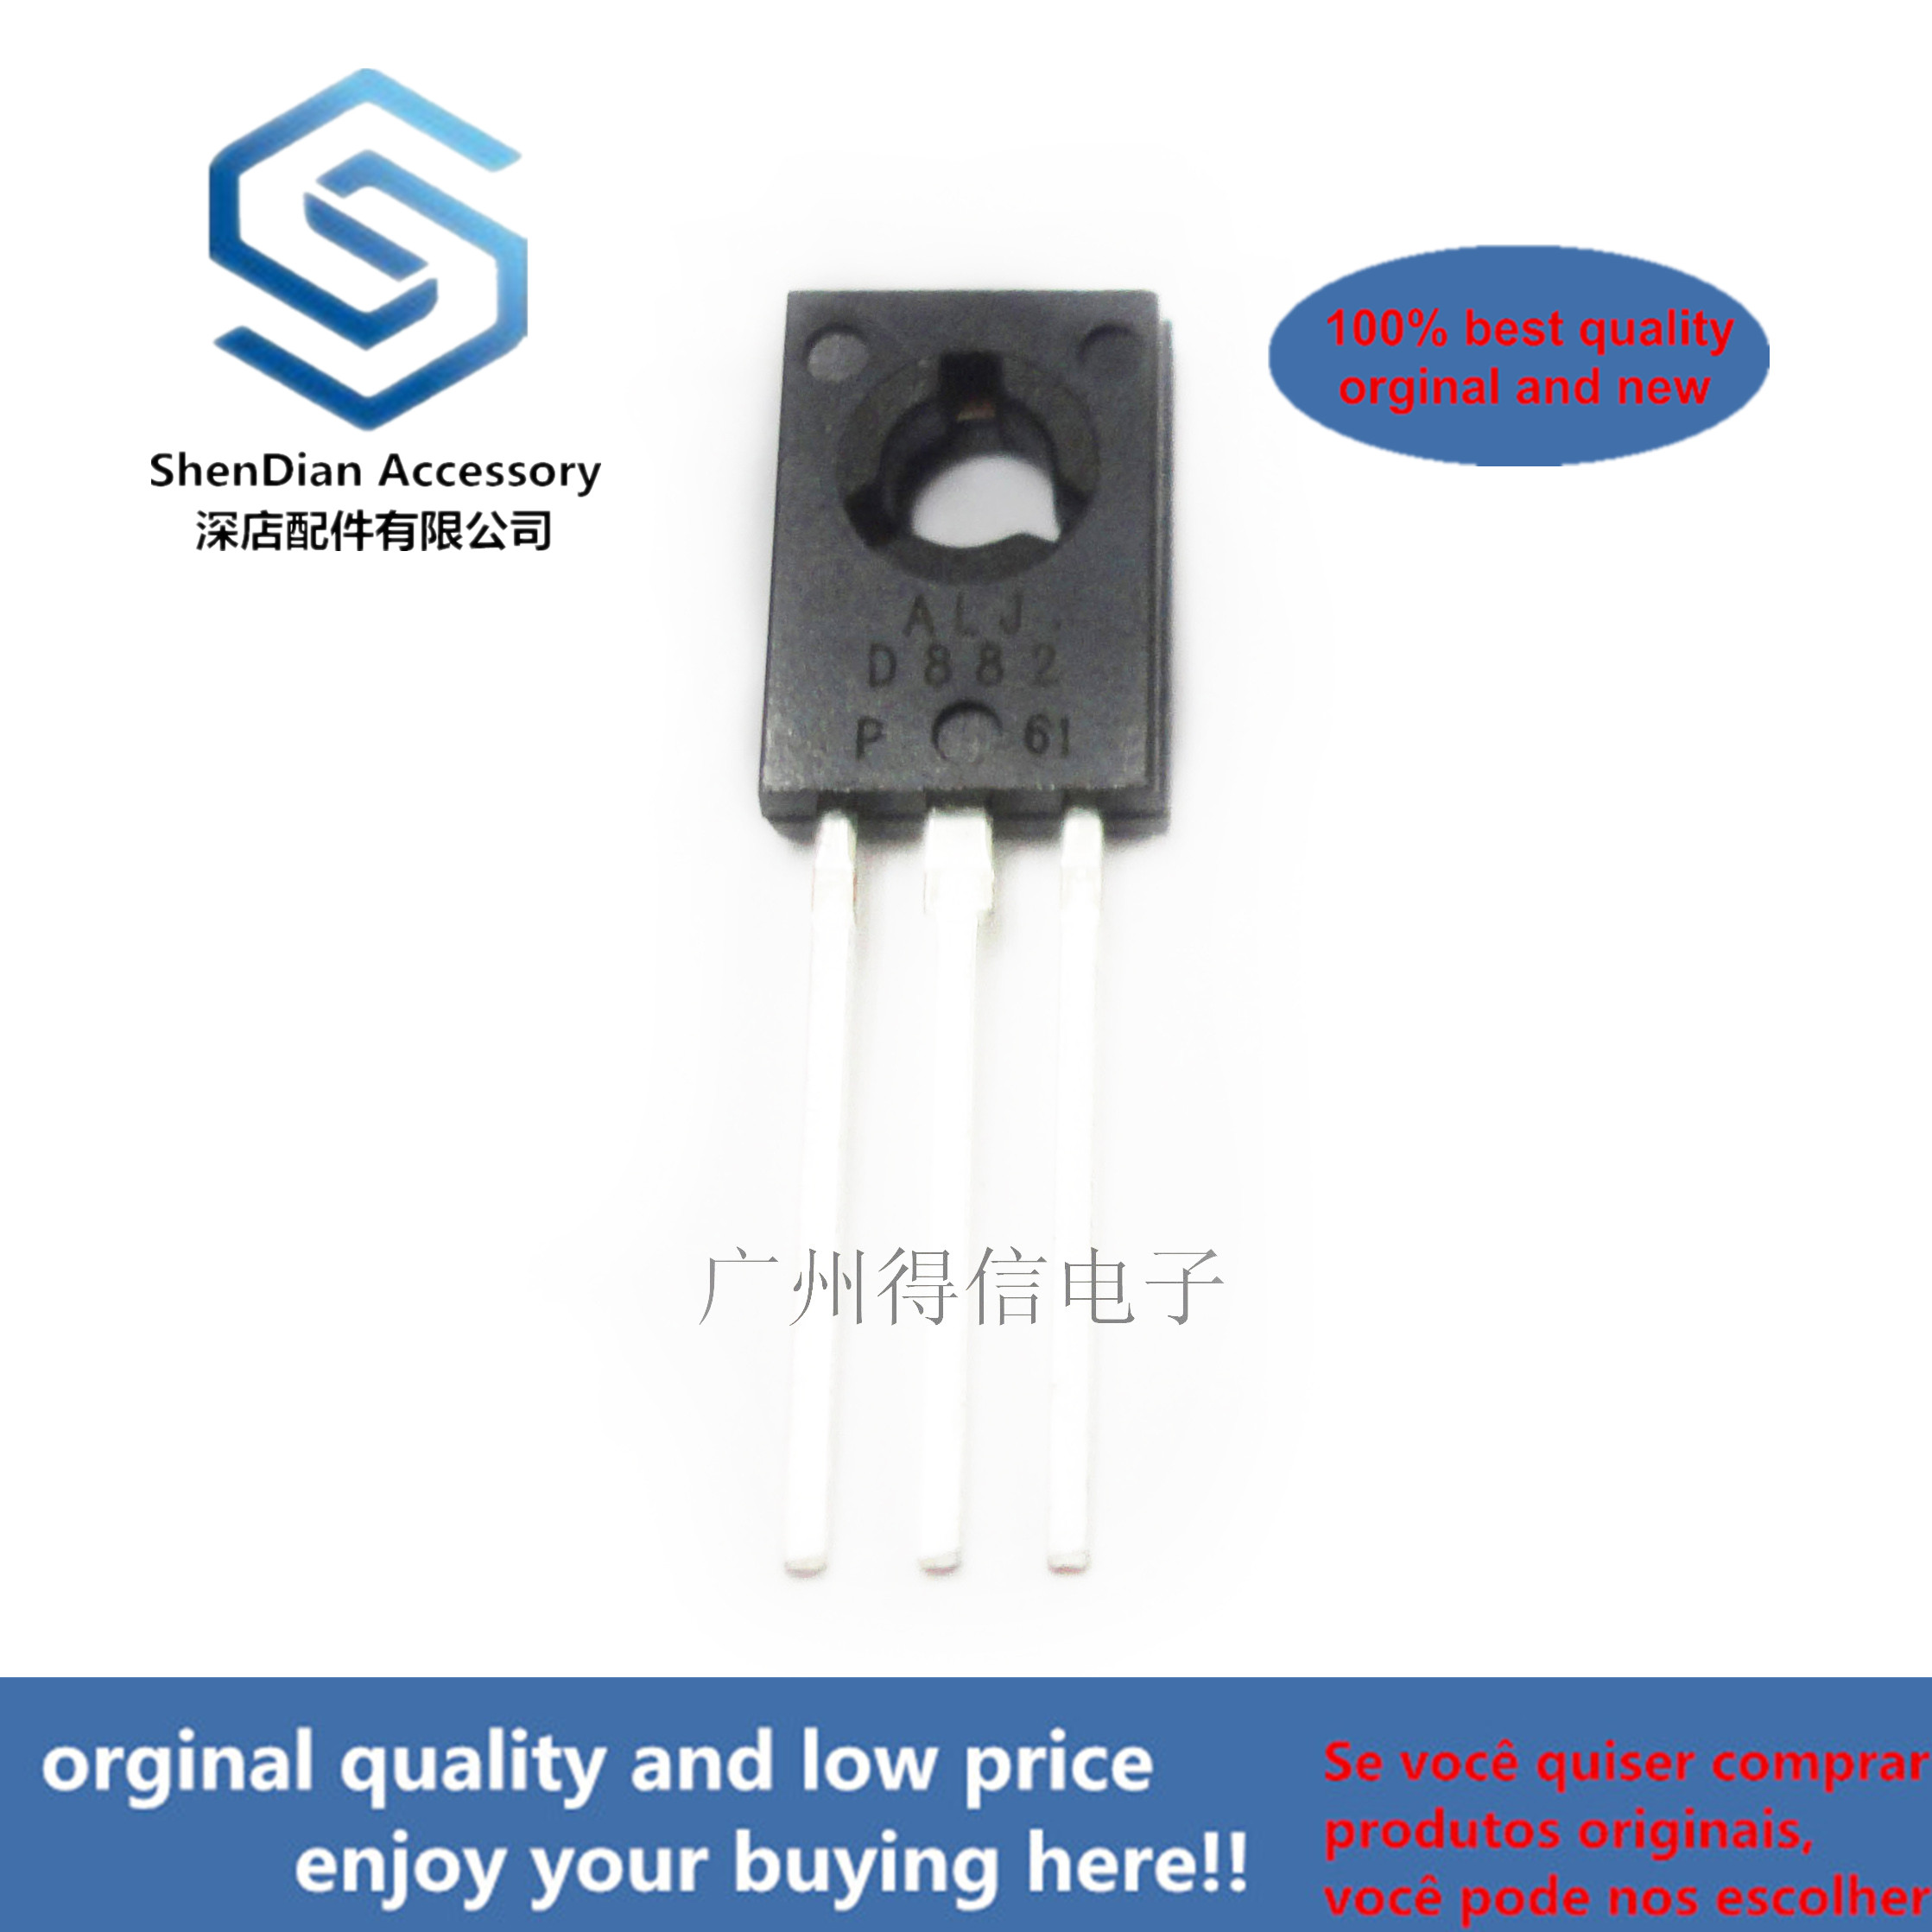 30pcs 100% Orginal New D882P D882 To-126 Bipolar Junction Transistor Real Photo